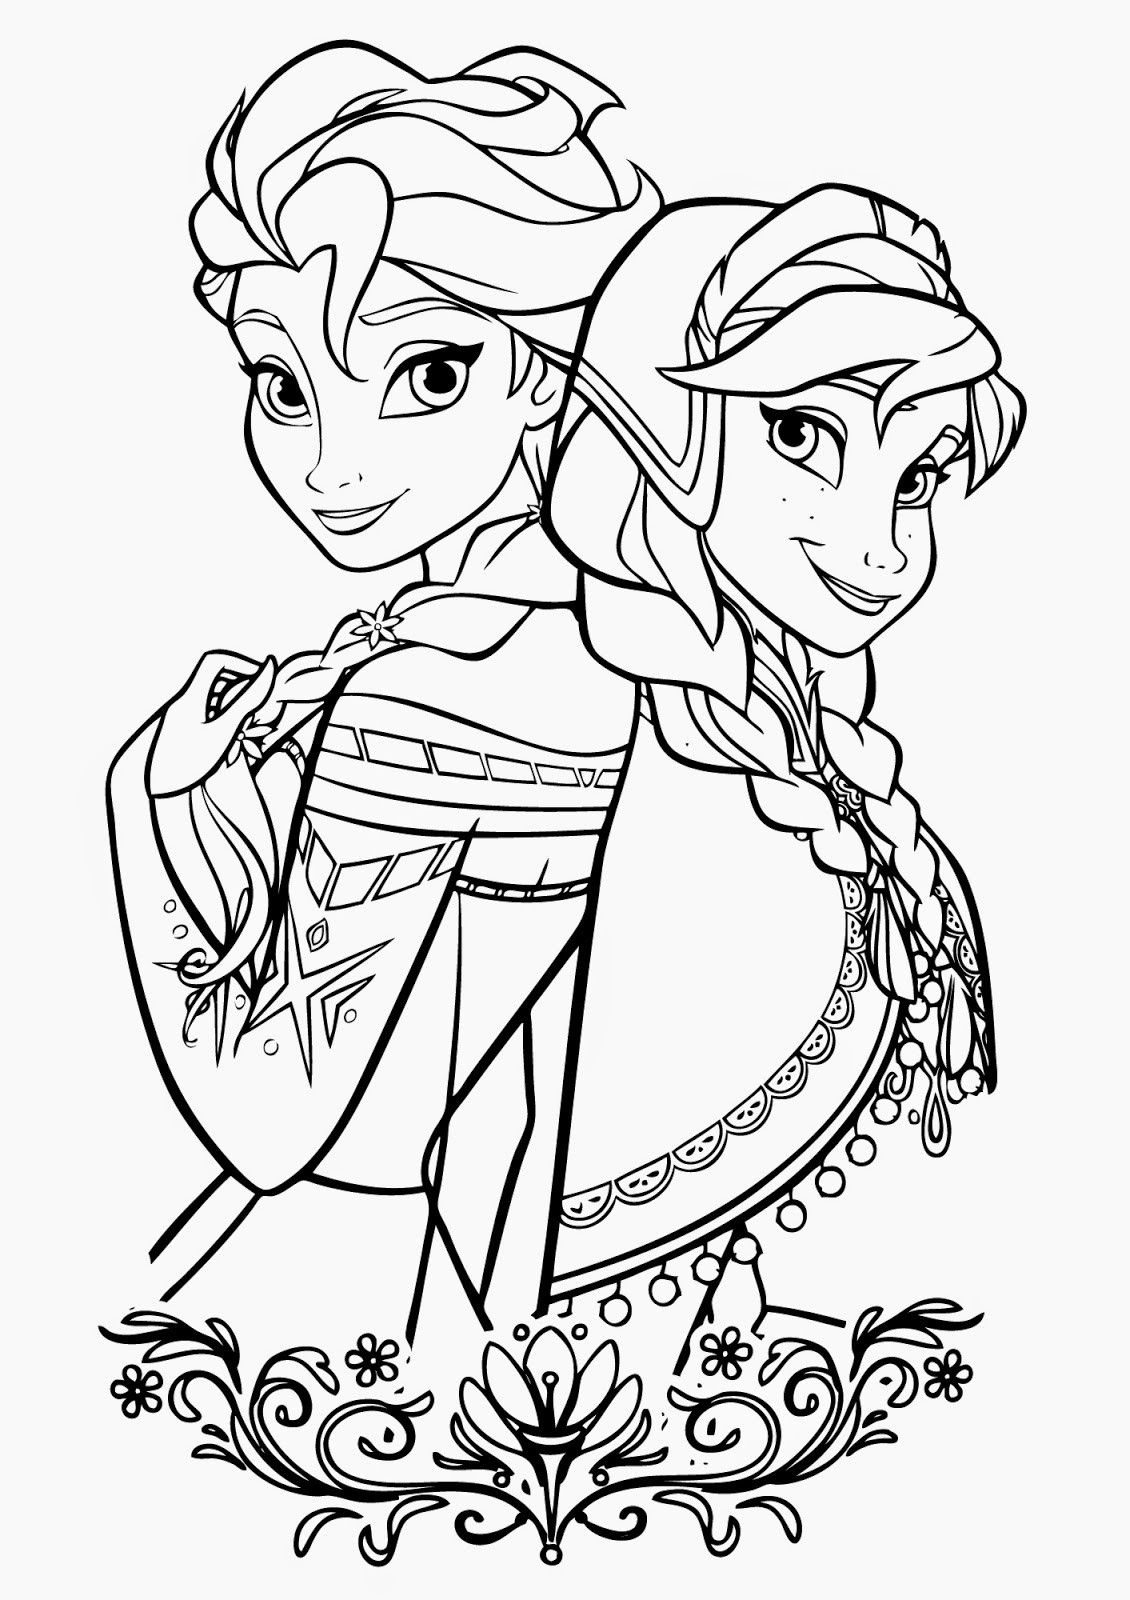 Anna Coloring Pages Printable Elsa And Anna Coloring Pages für Malvorlage Elsa